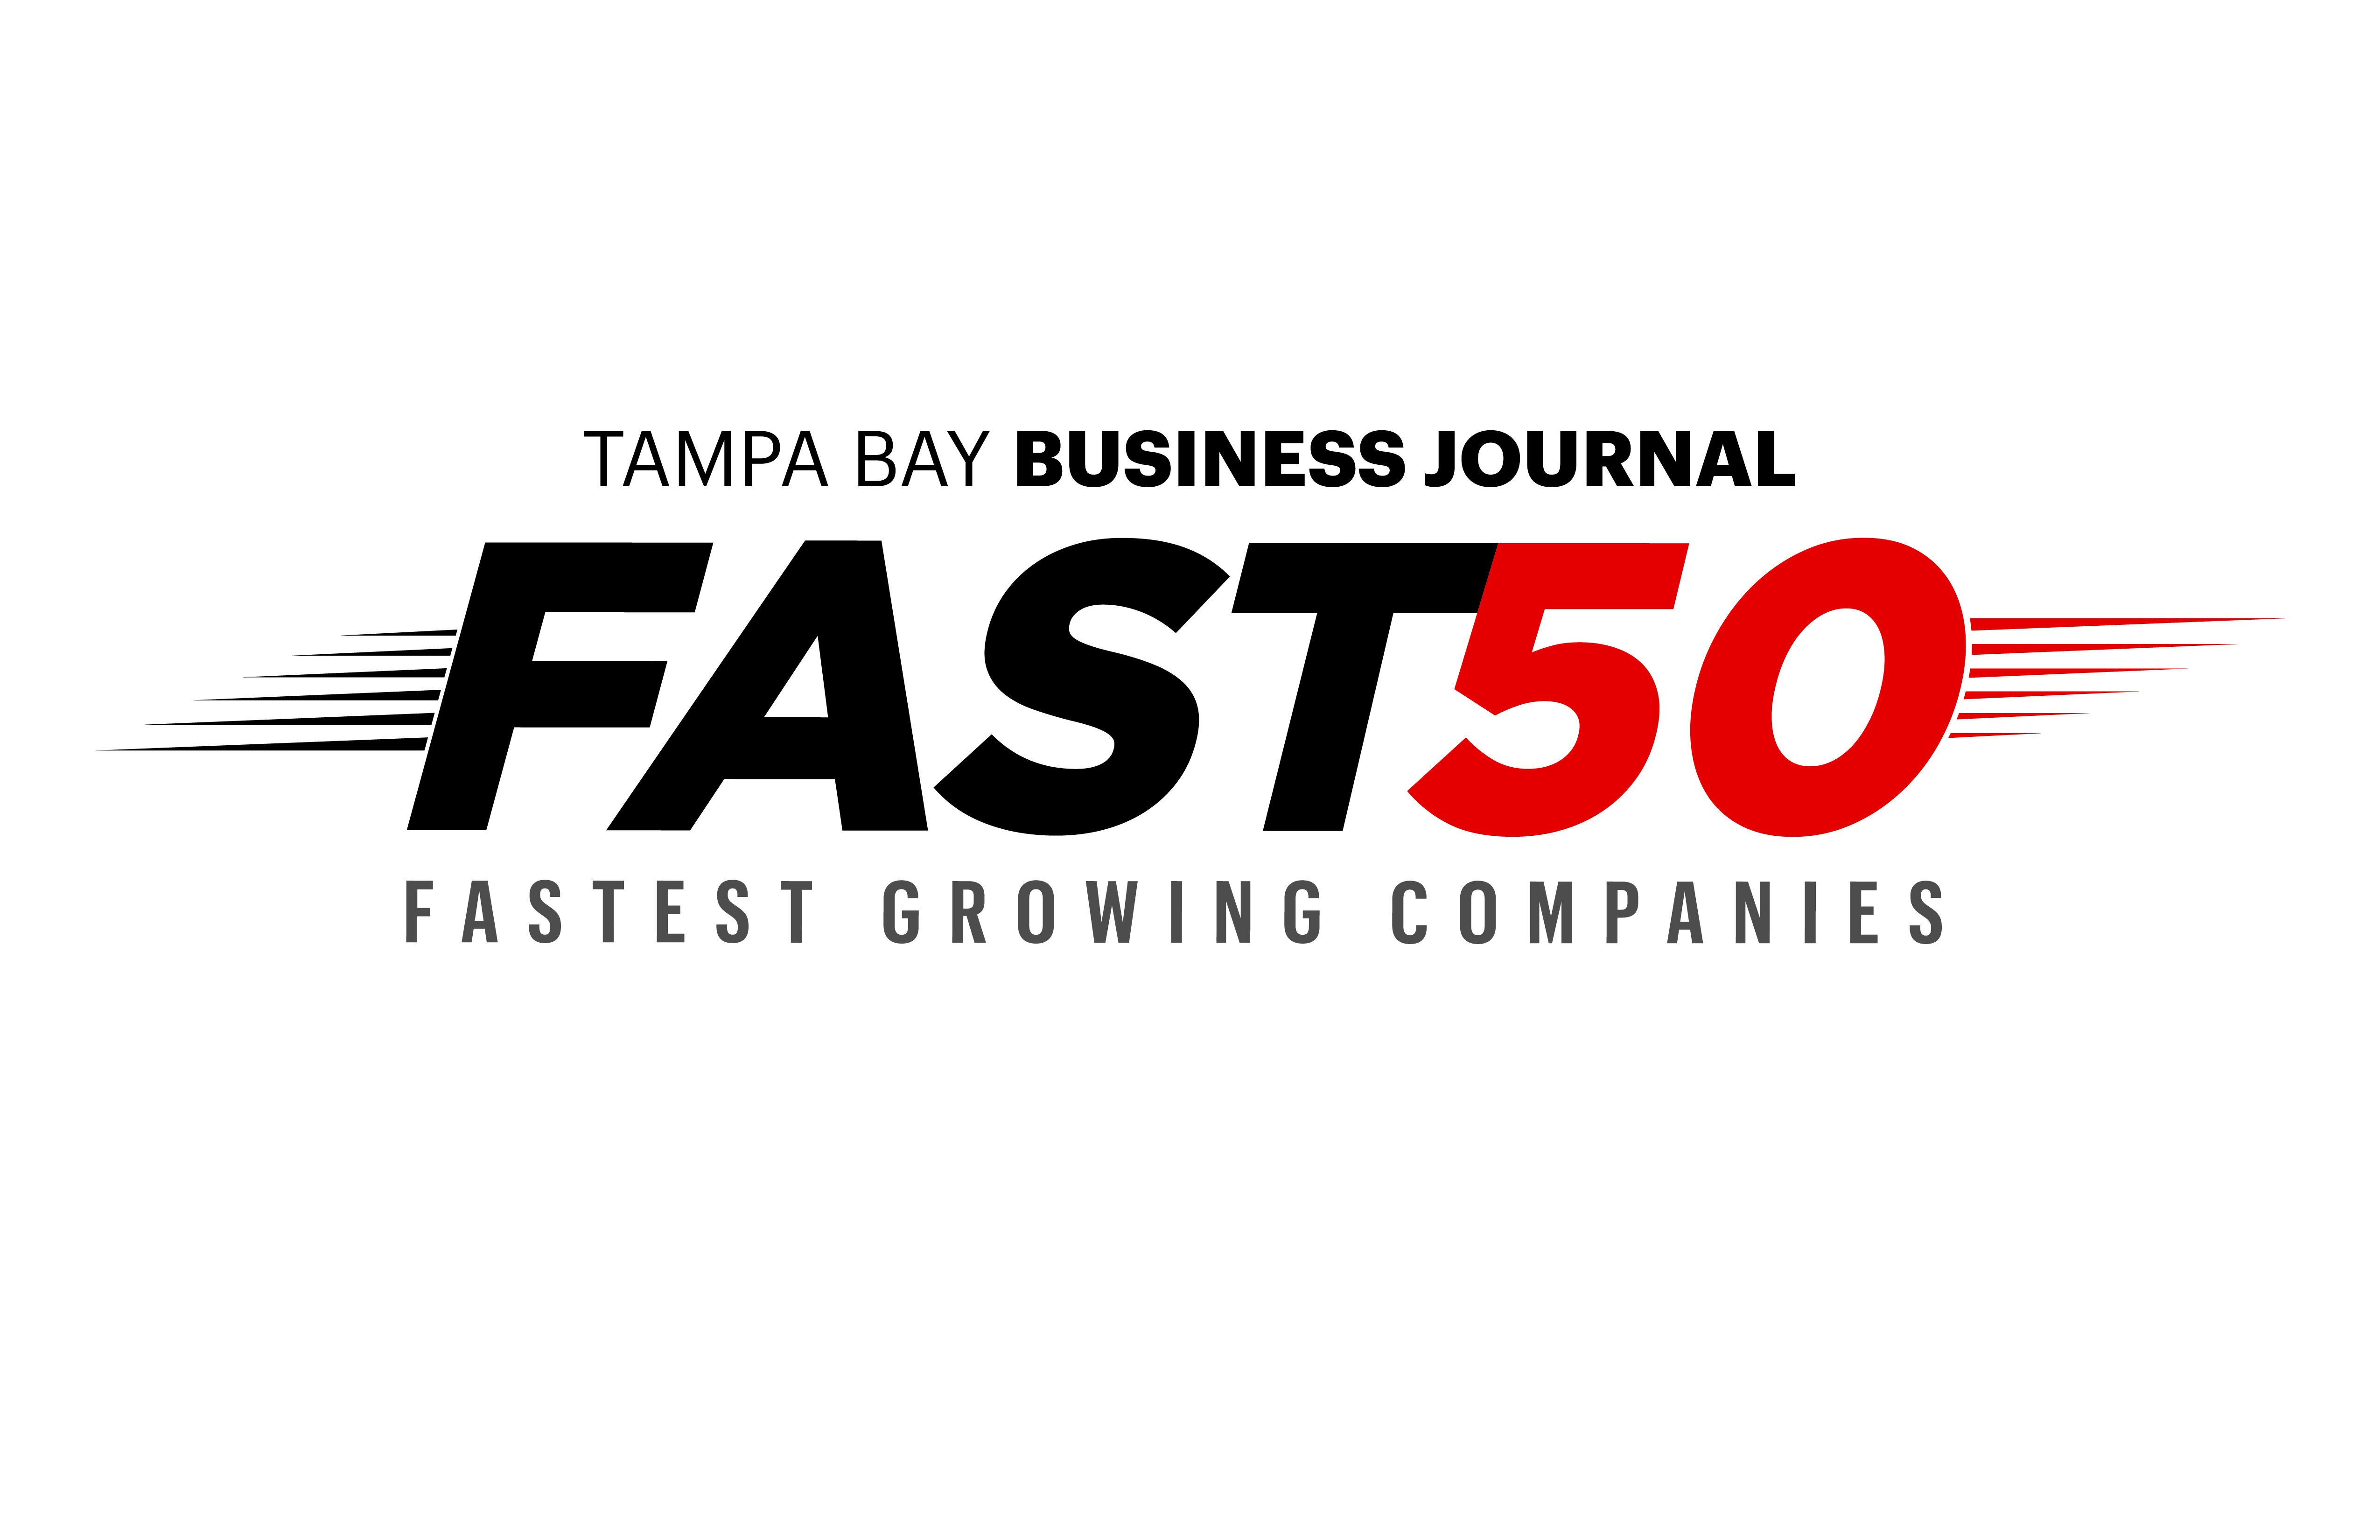 Tampa Bat Business Journal Fast50 Fastest Growing Companies